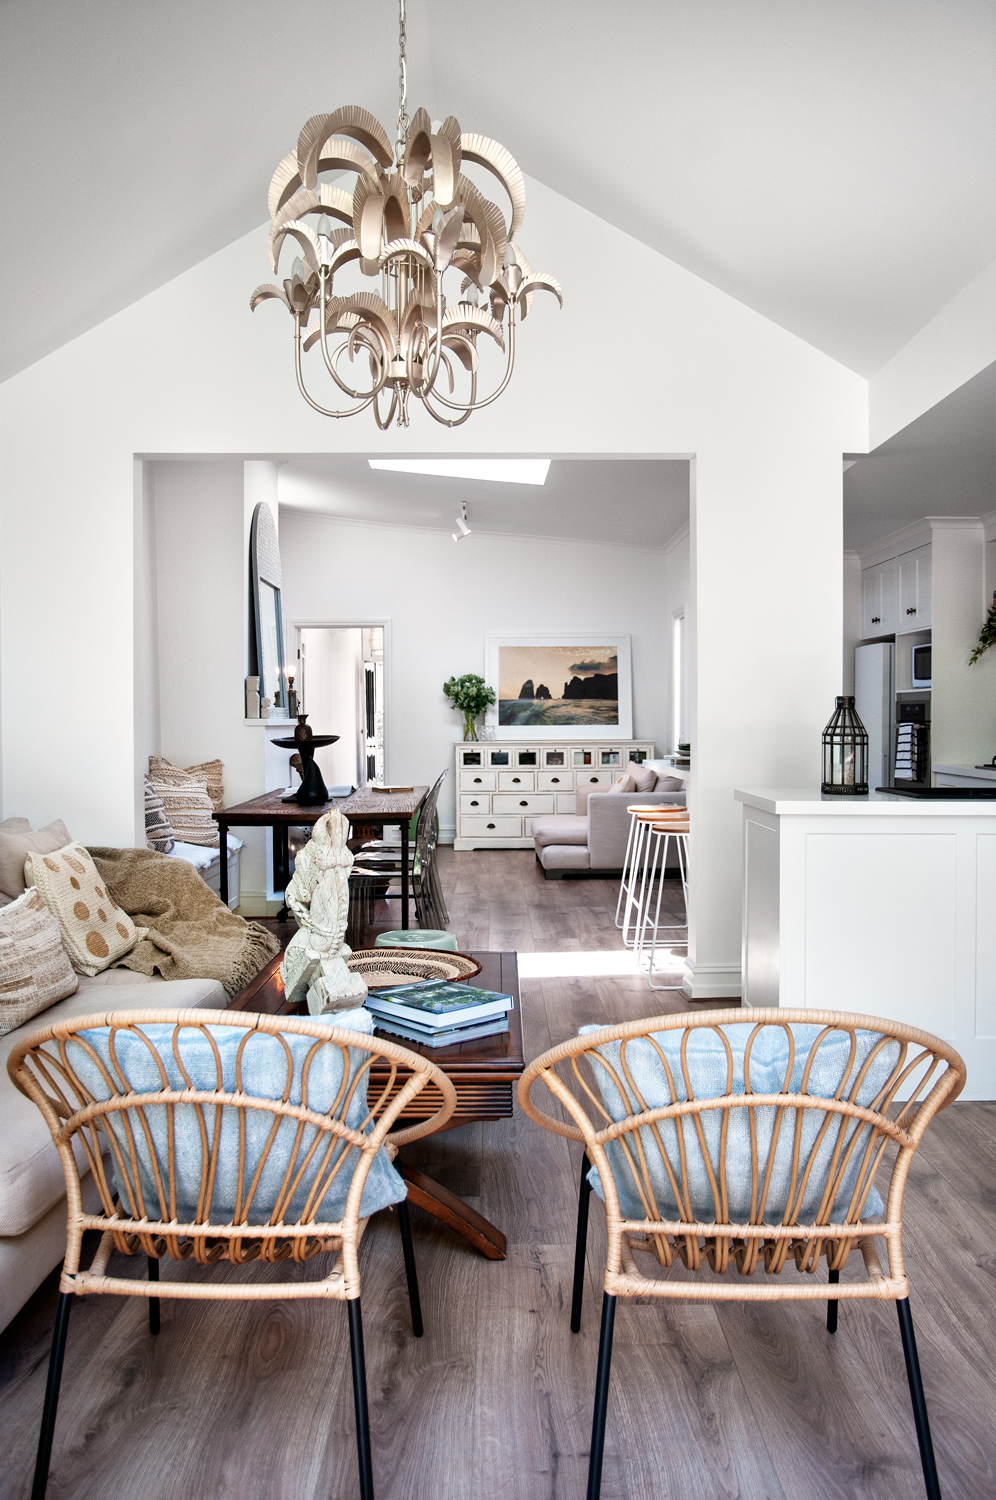 Two rattan chairs in the living room with an intricate hanging feature light